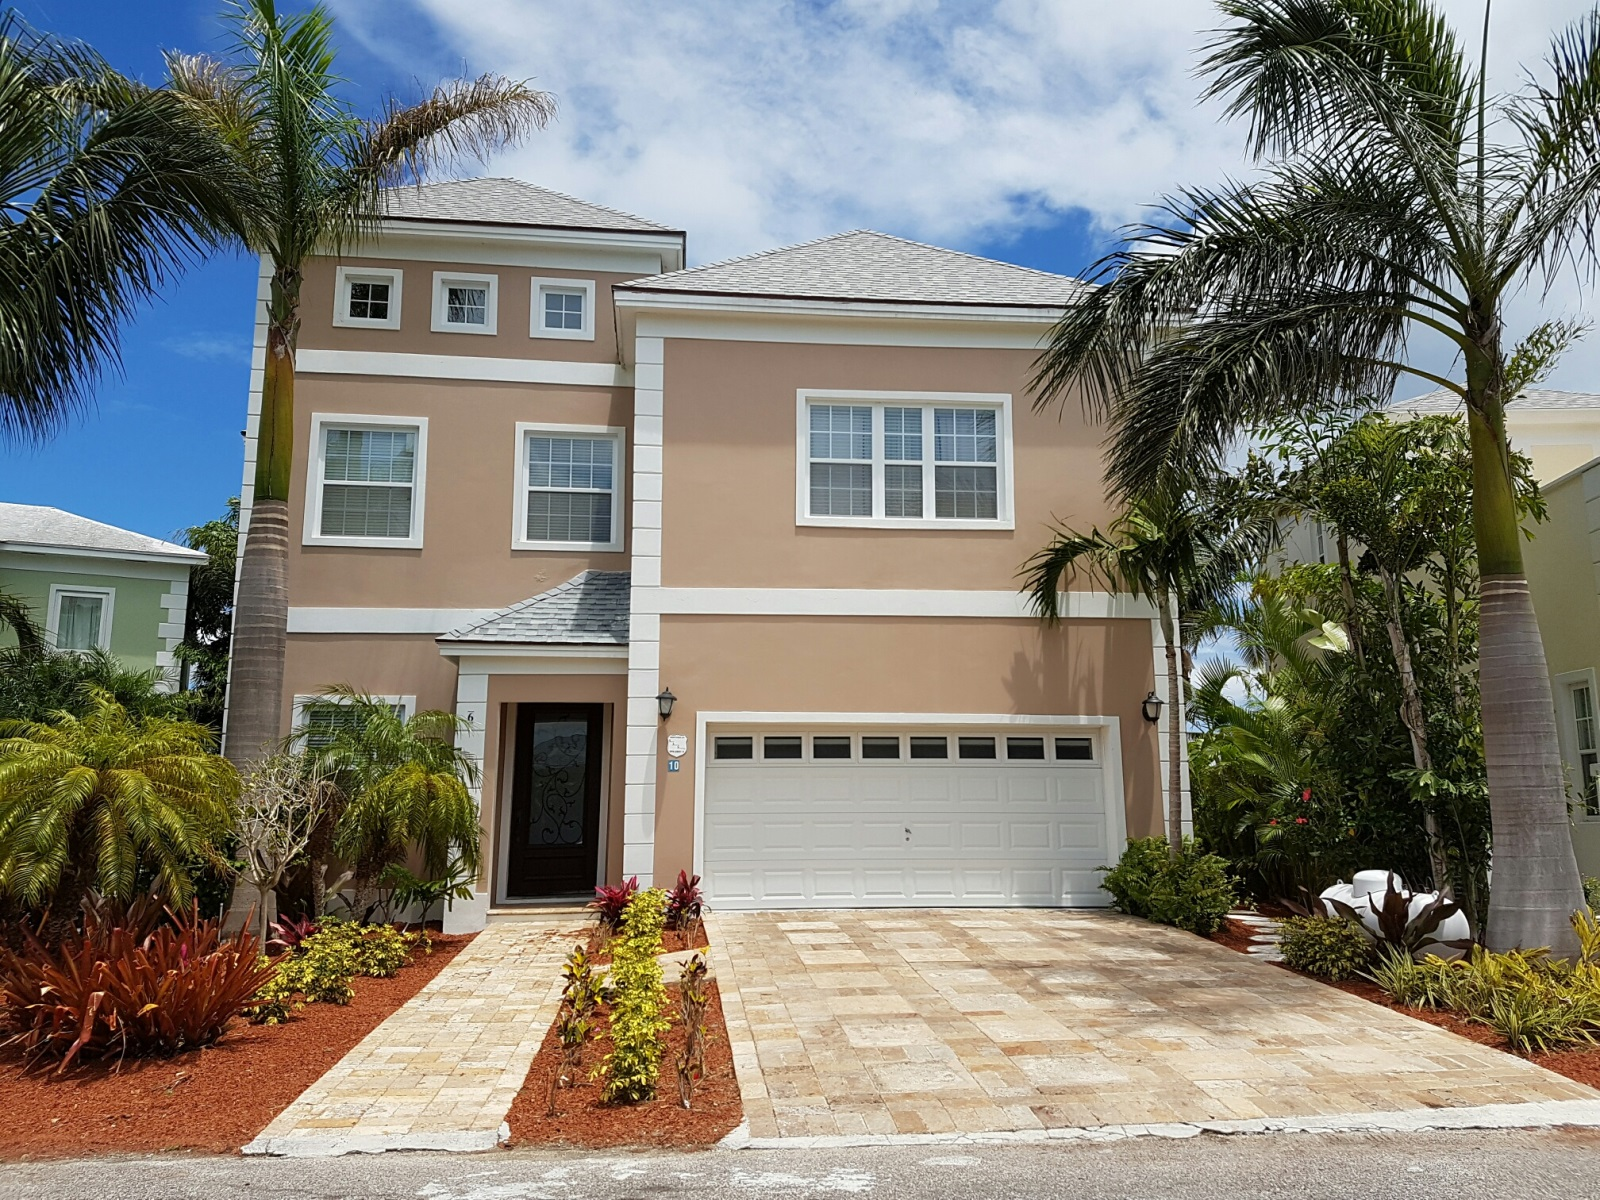 Single Family Home for Rent at Magnificent Canal Front Home in Sandyport Sandyport, Cable Beach, Nassau And Paradise Island Bahamas